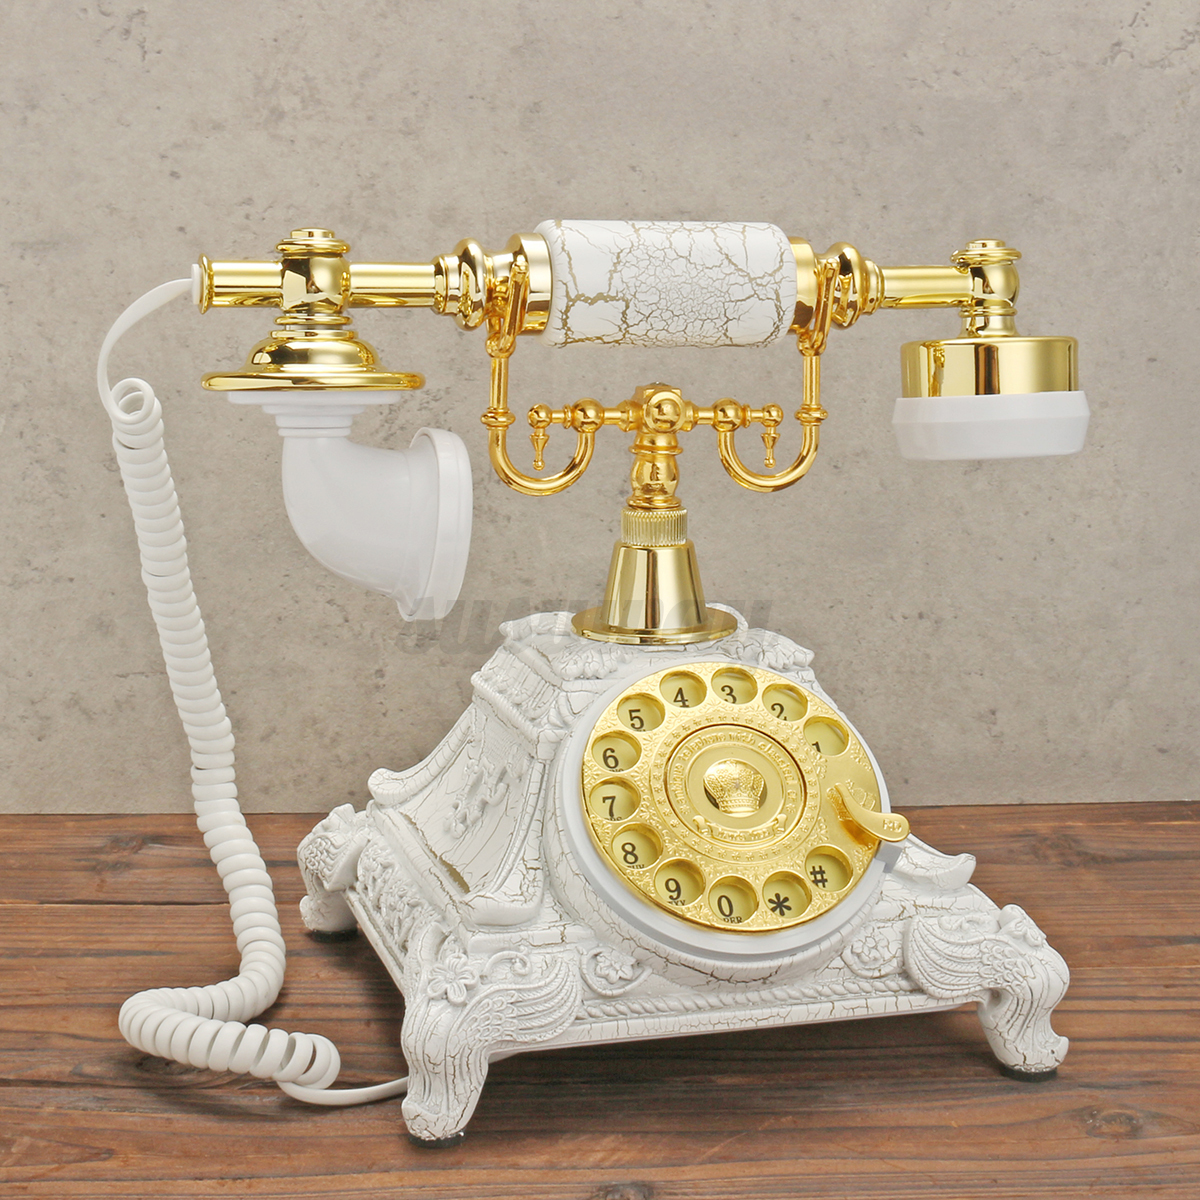 vintage rotary t l phone fixe cadran rotatif main libre old phone bureau ancien eur 75 99. Black Bedroom Furniture Sets. Home Design Ideas